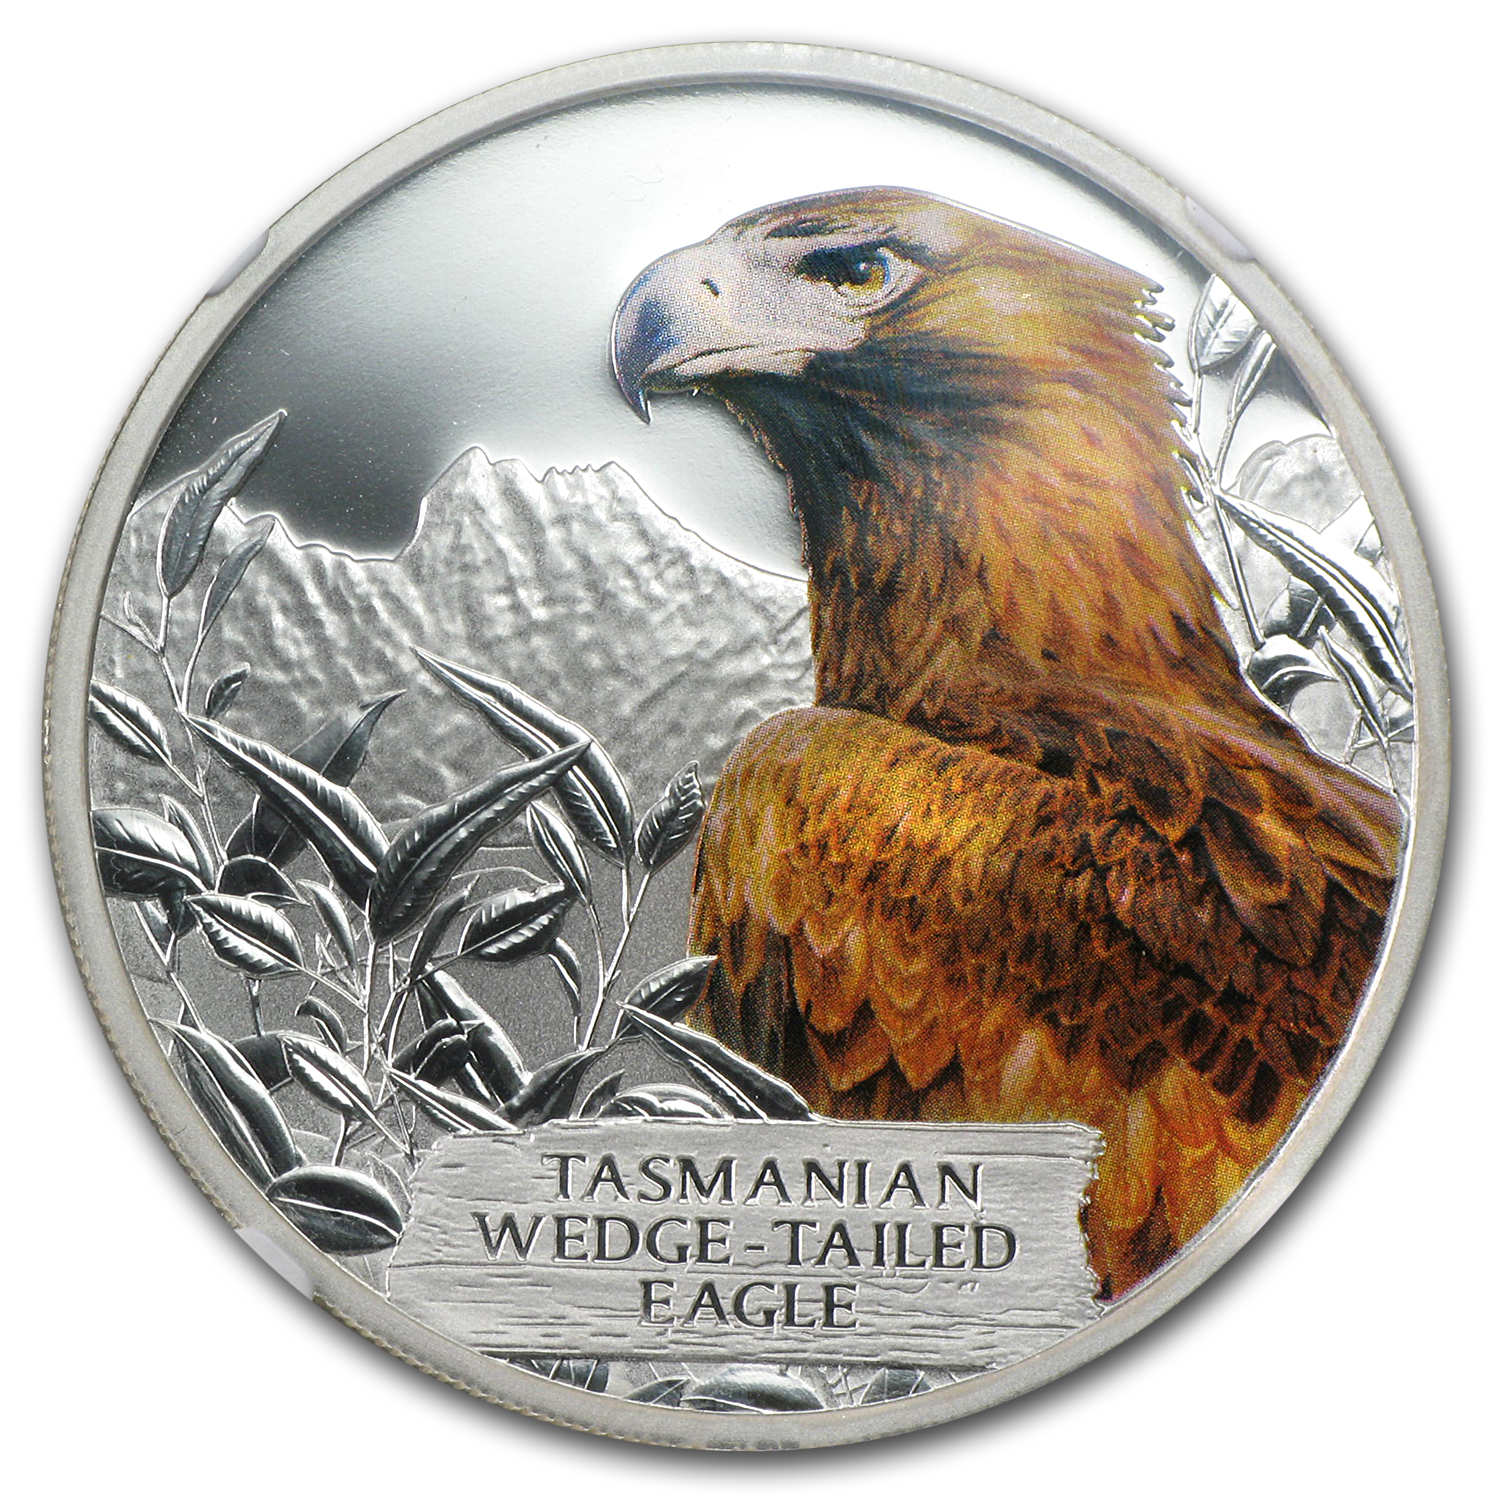 2012 1 oz Silver Tuvalu Wedge-Tailed Eagle PF-69 NGC